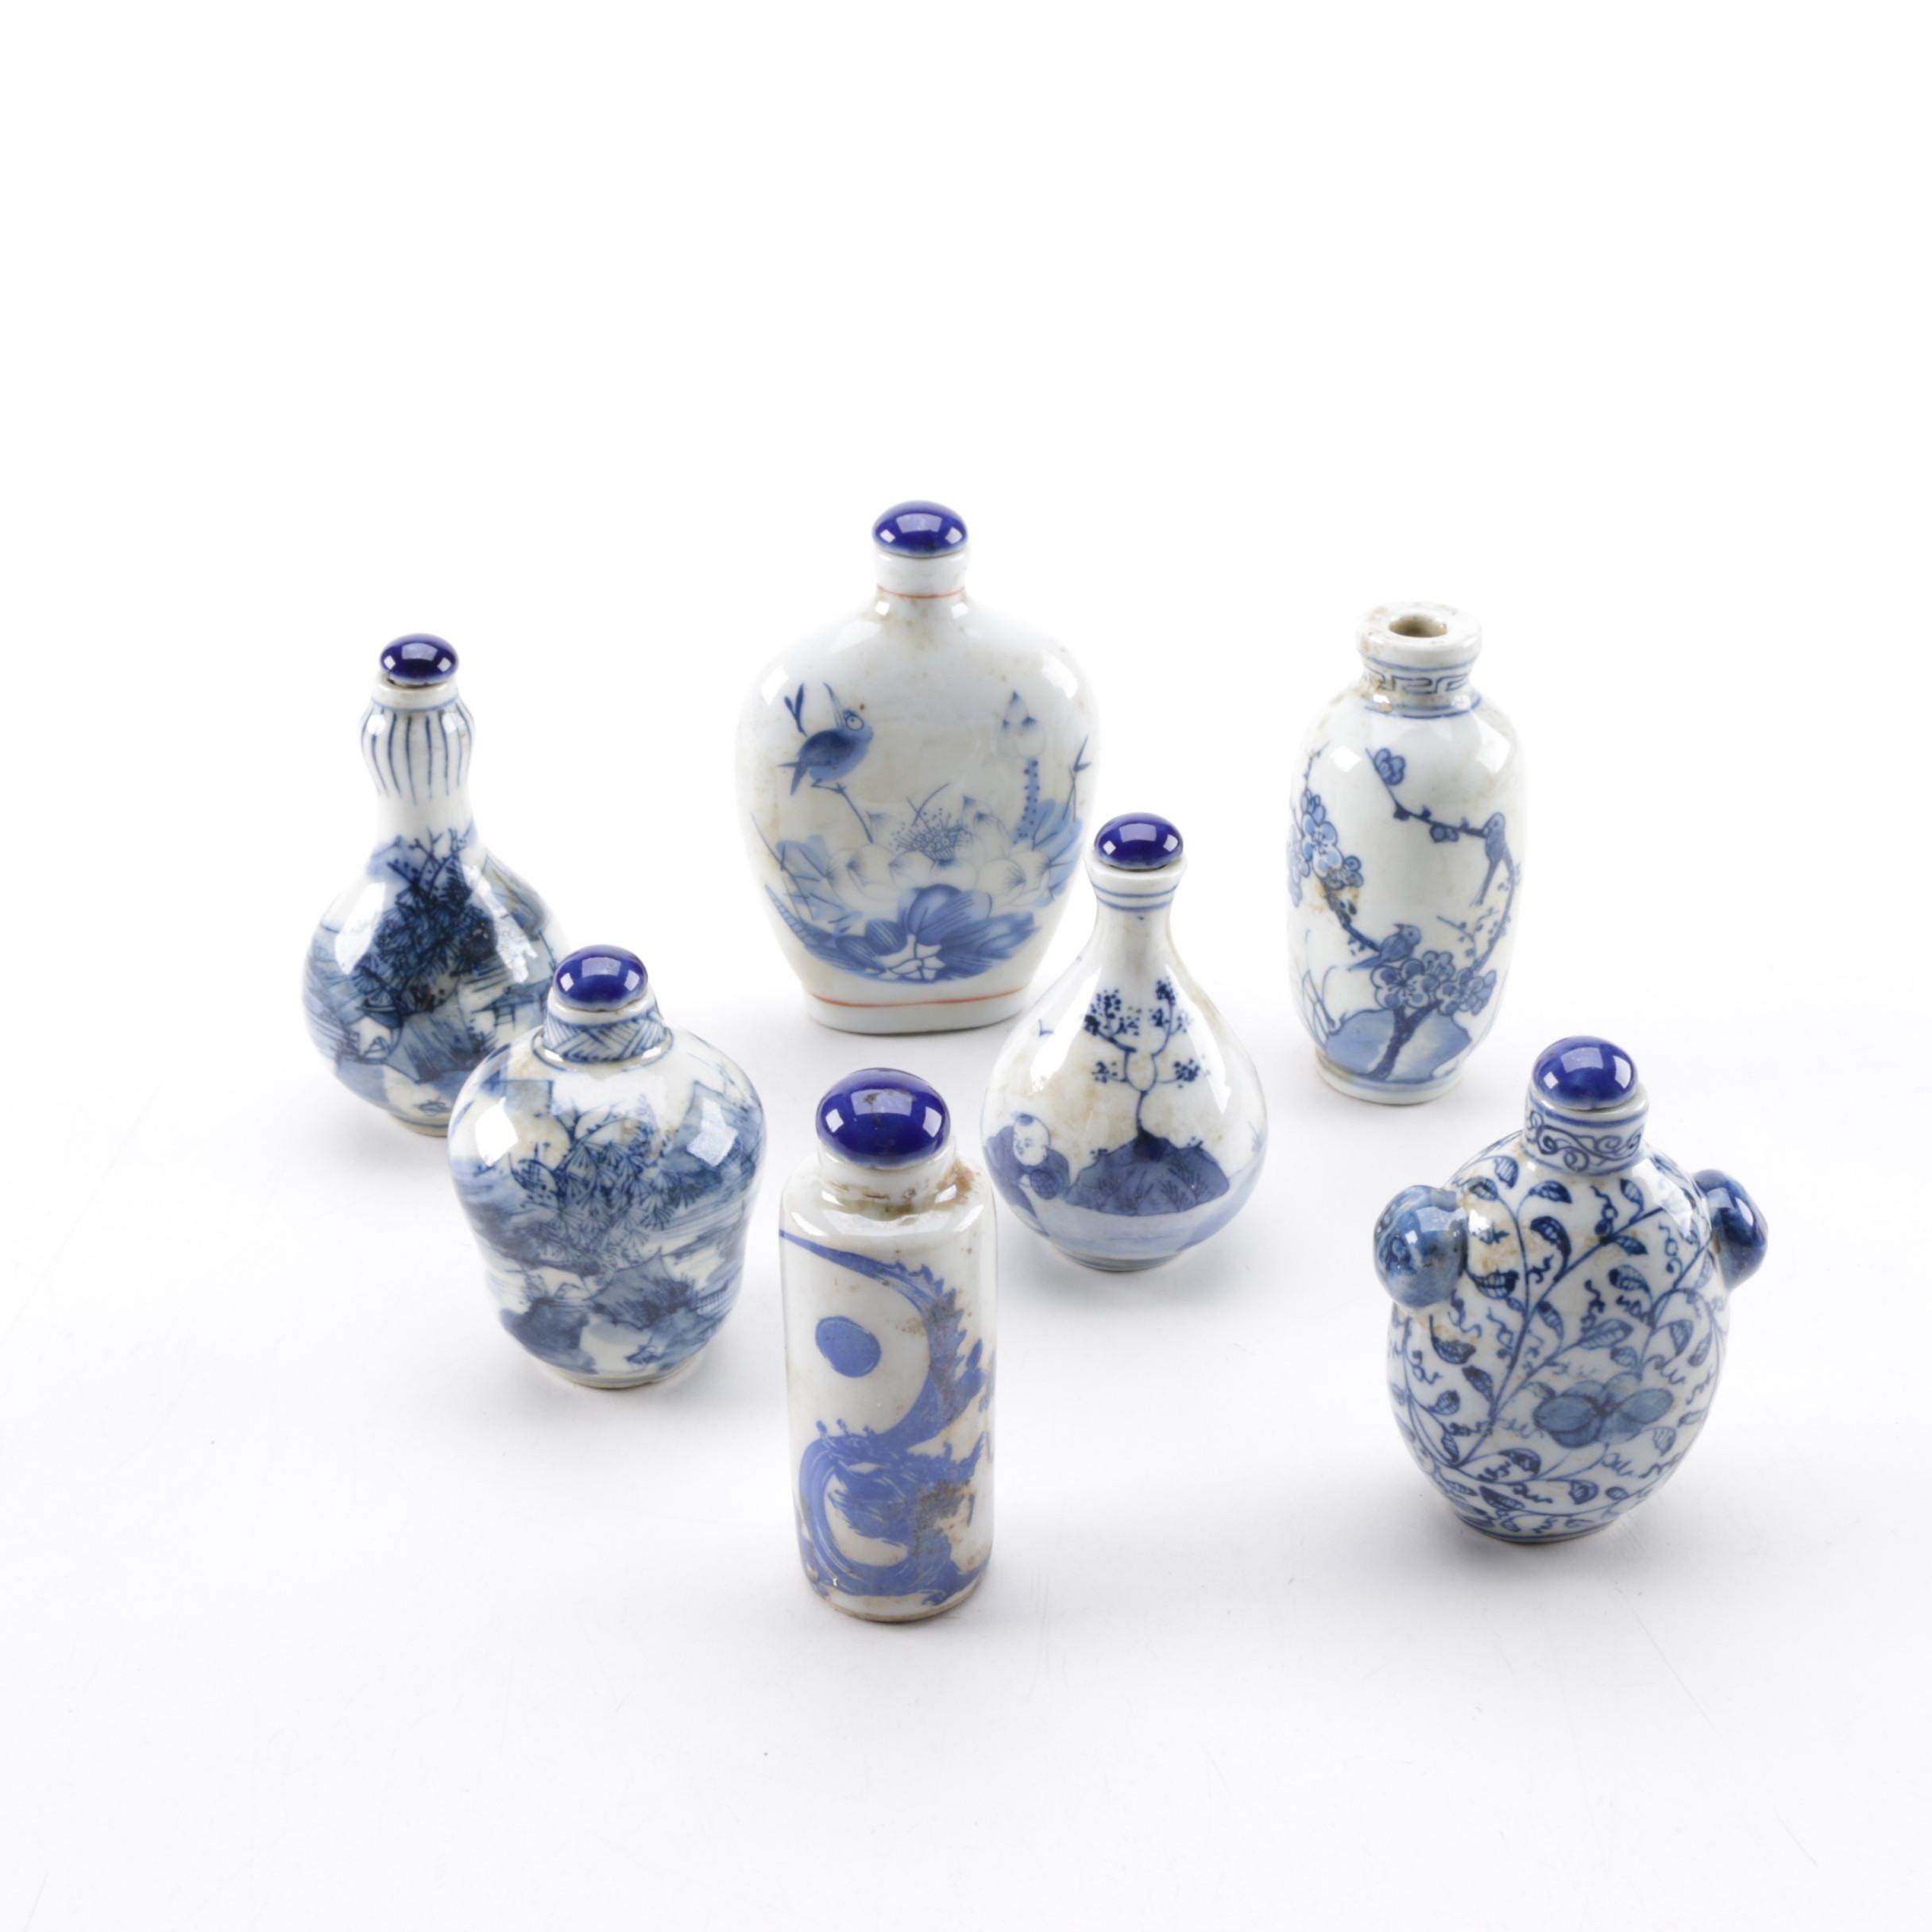 Chinese Ceramic Snuff Bottles